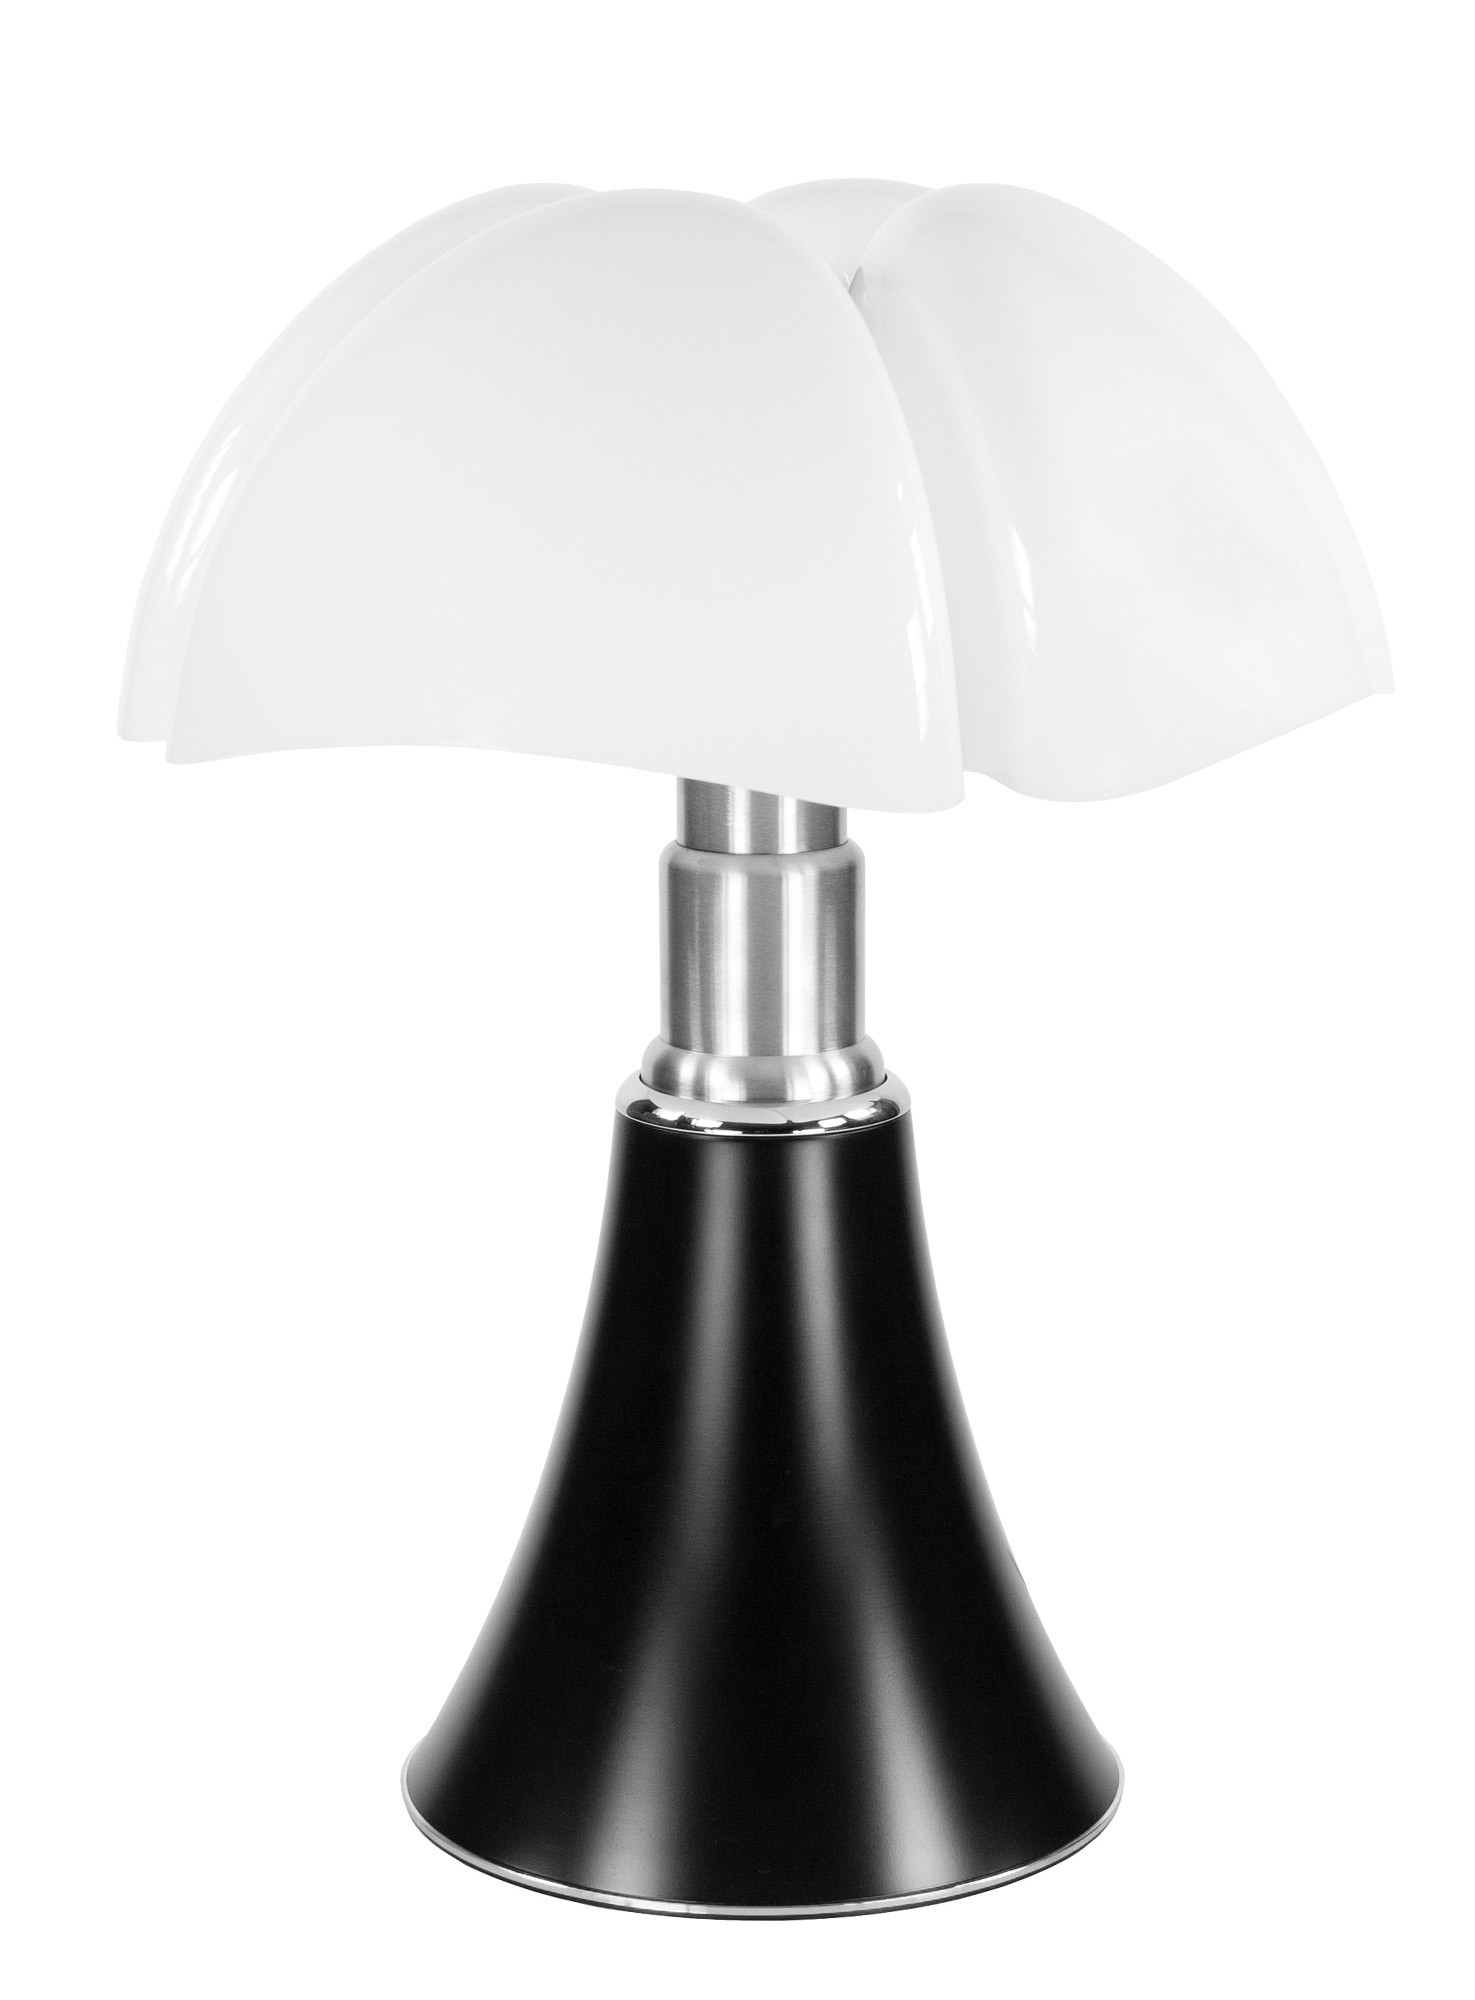 lampe mini pipistrello latest image en chargement with lampe mini pipistrello lampe. Black Bedroom Furniture Sets. Home Design Ideas